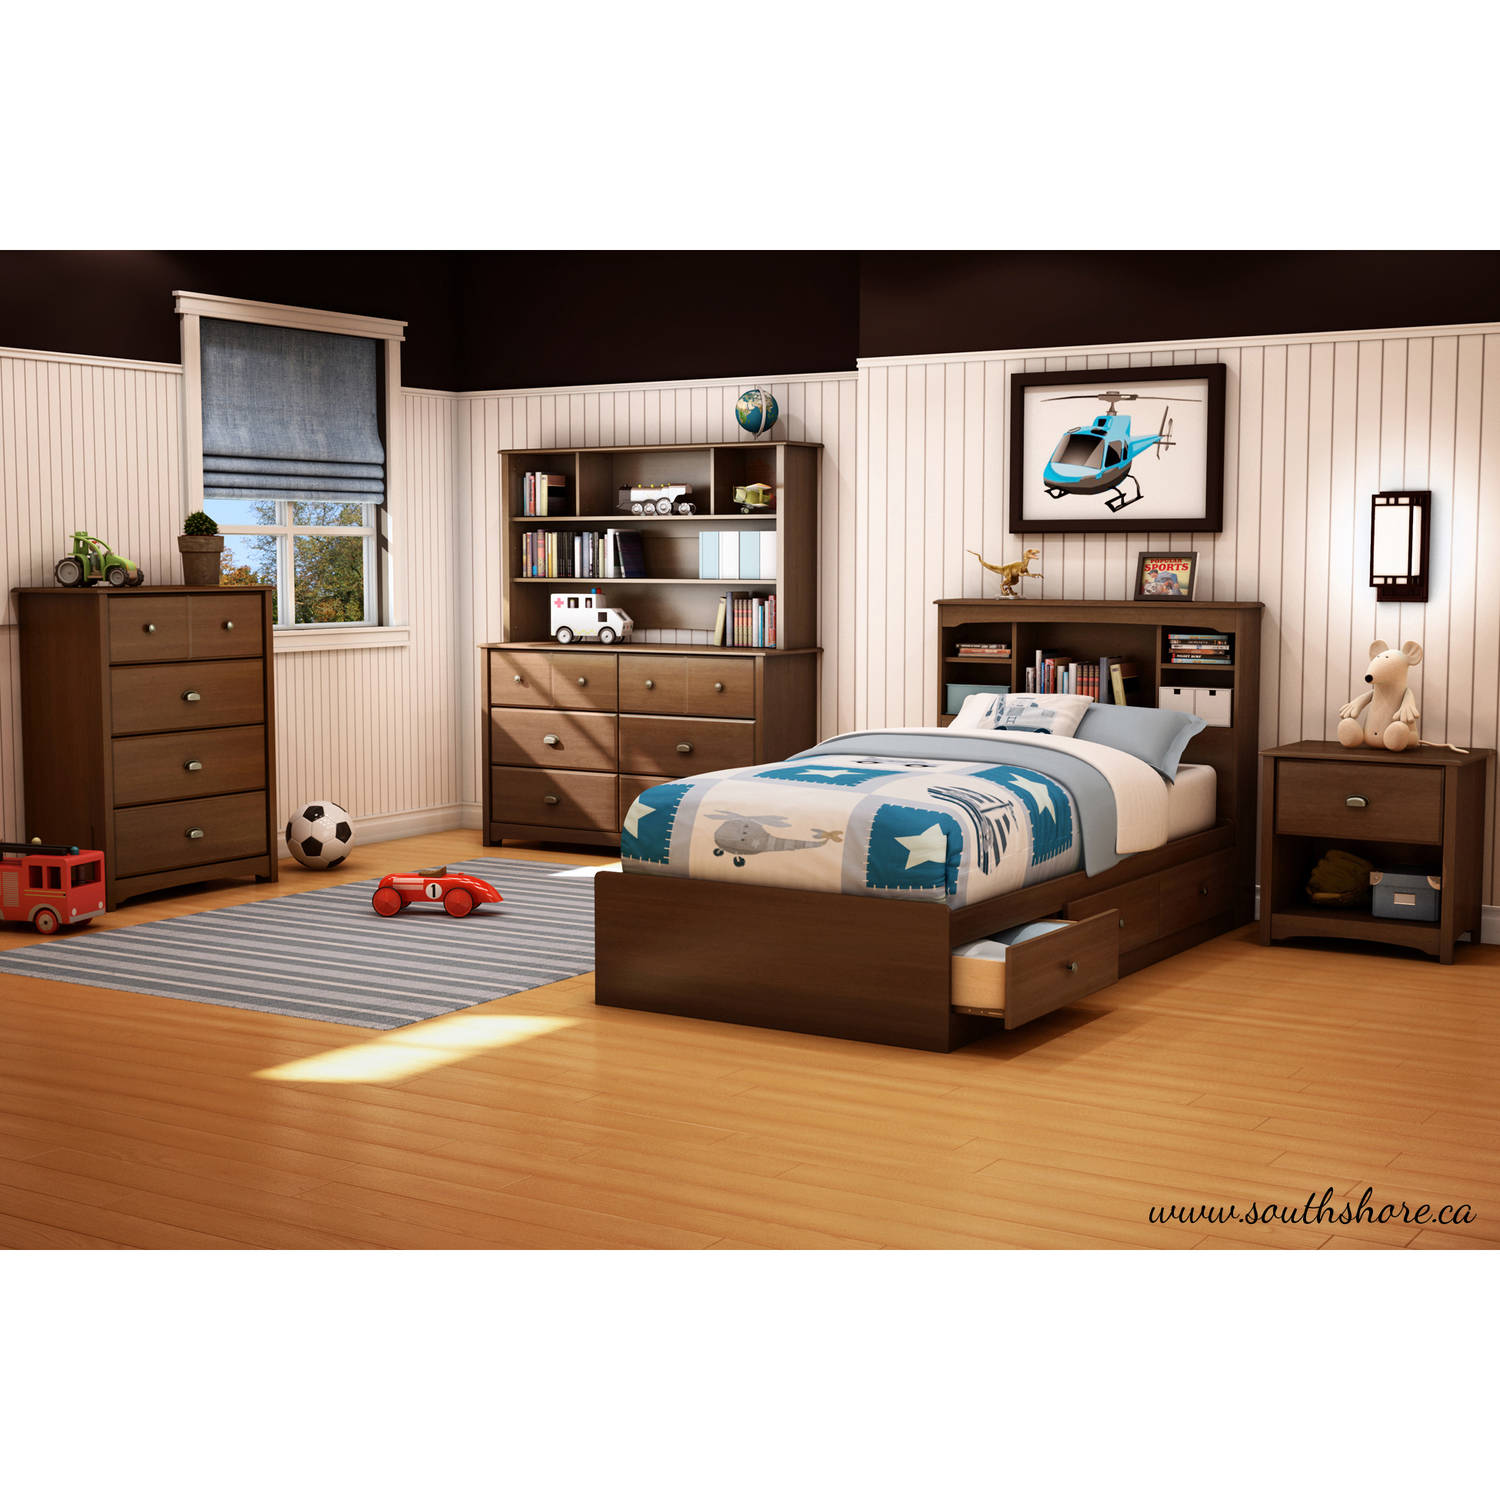 south shore furniture willow twin mates bed  walmartcom -